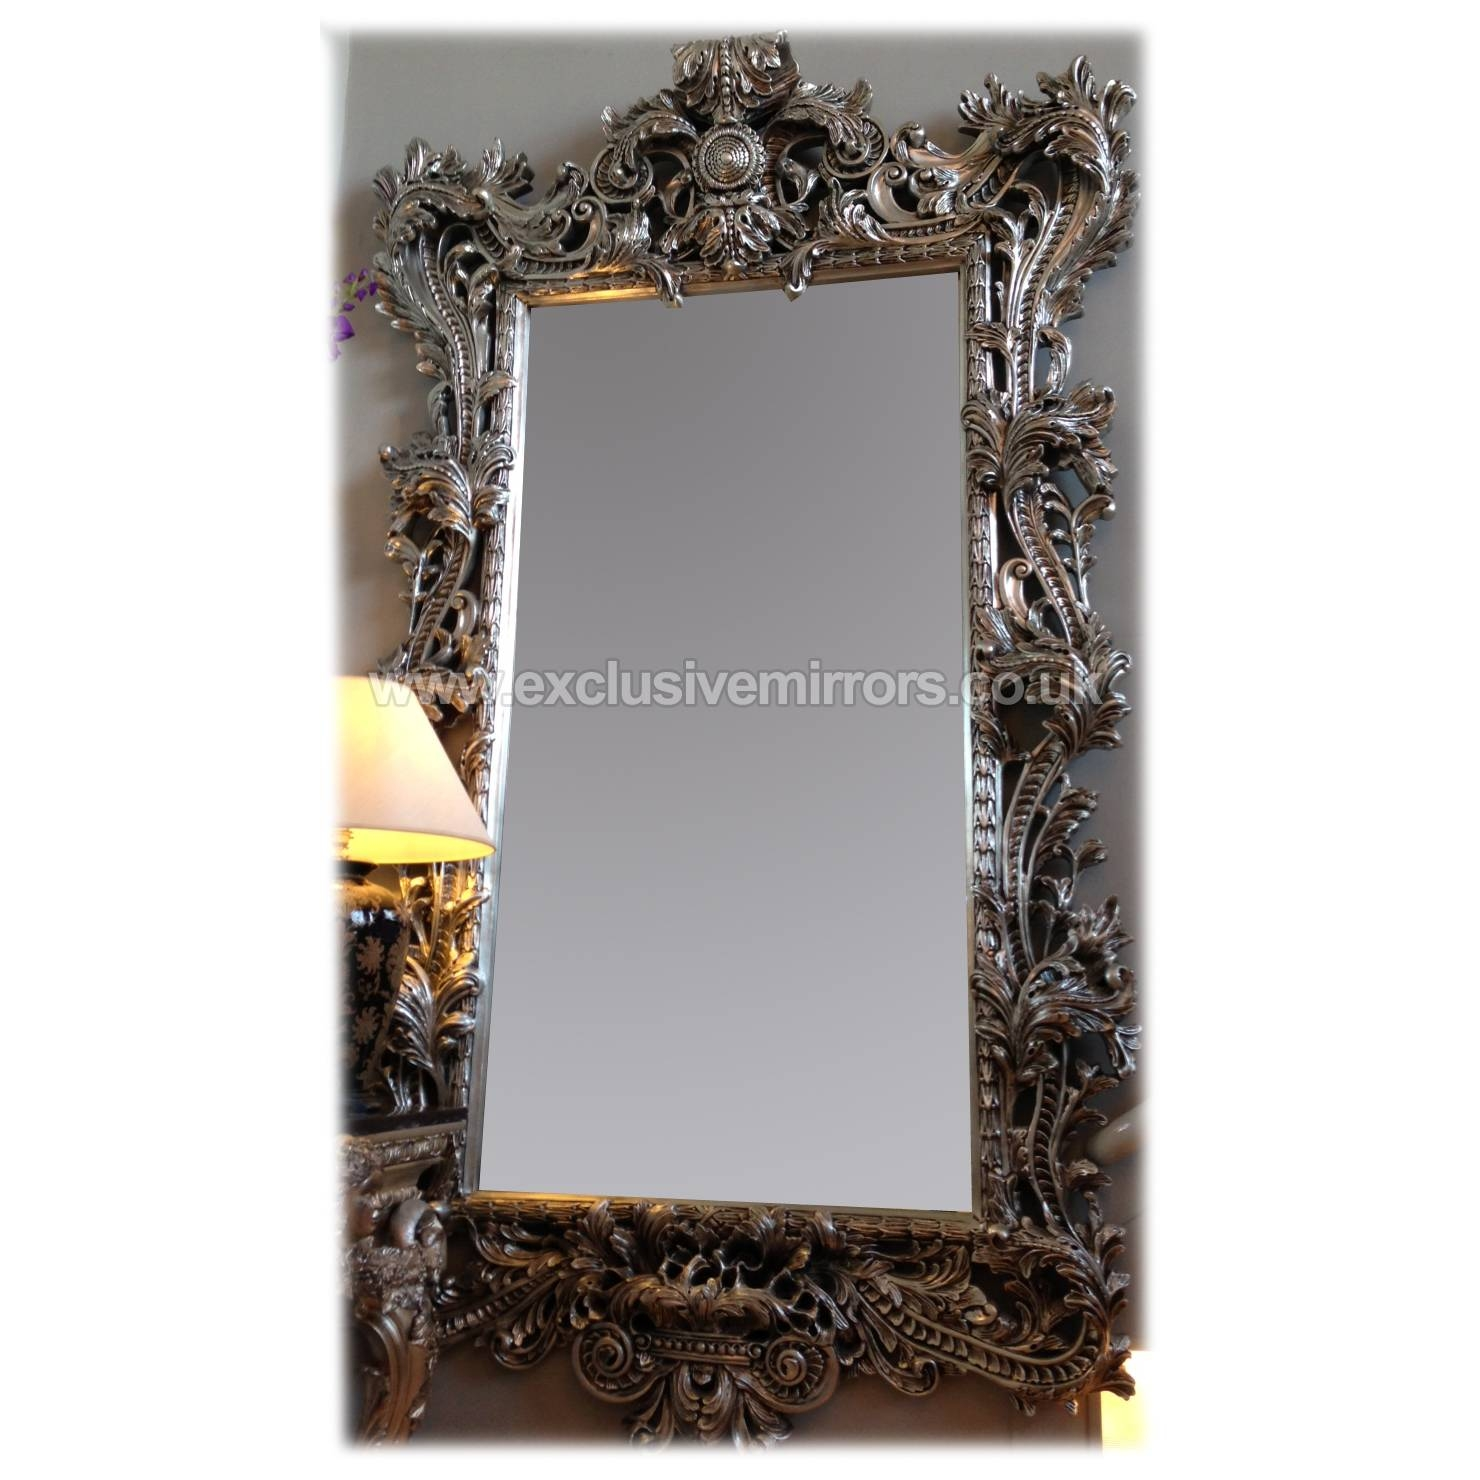 Extra Large Wall Mirrors 109 Cute Interior And Large Gold Very Inside Ornate Wall Mirrors (View 12 of 25)